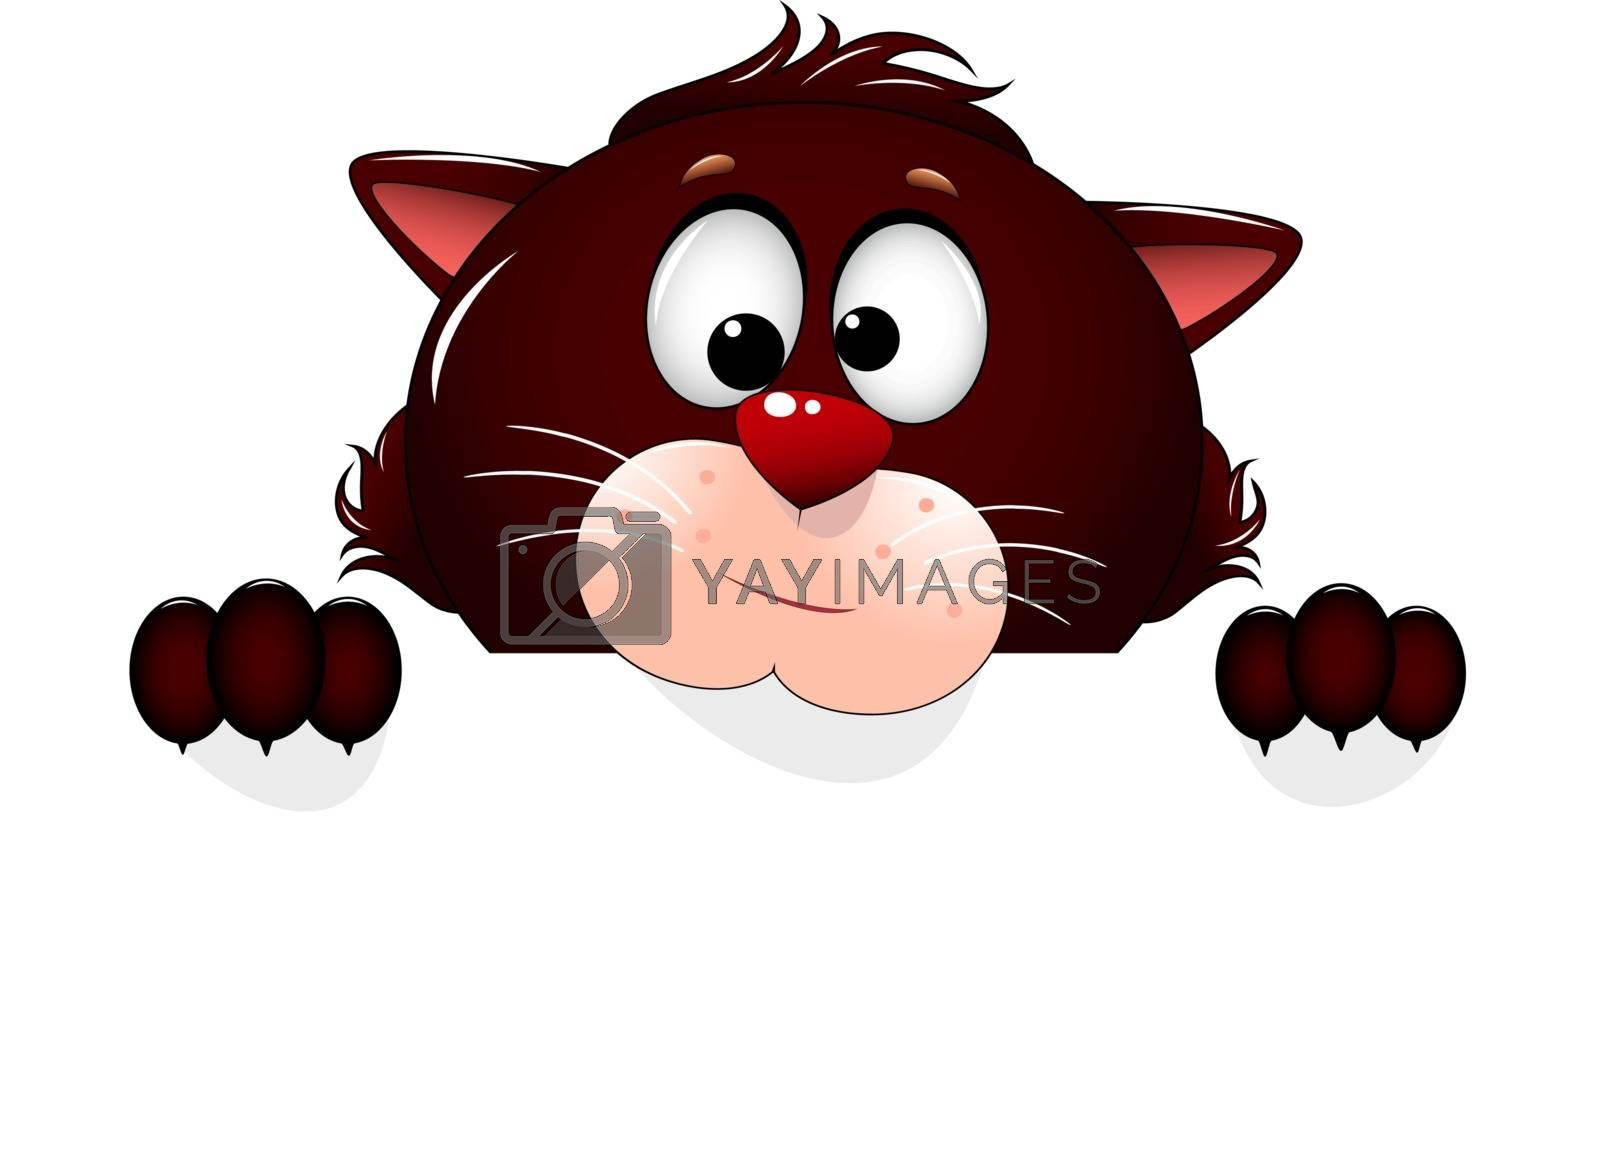 Cartoon cat. Feline portrait close-up. Cat face on a white background. Greeting card.